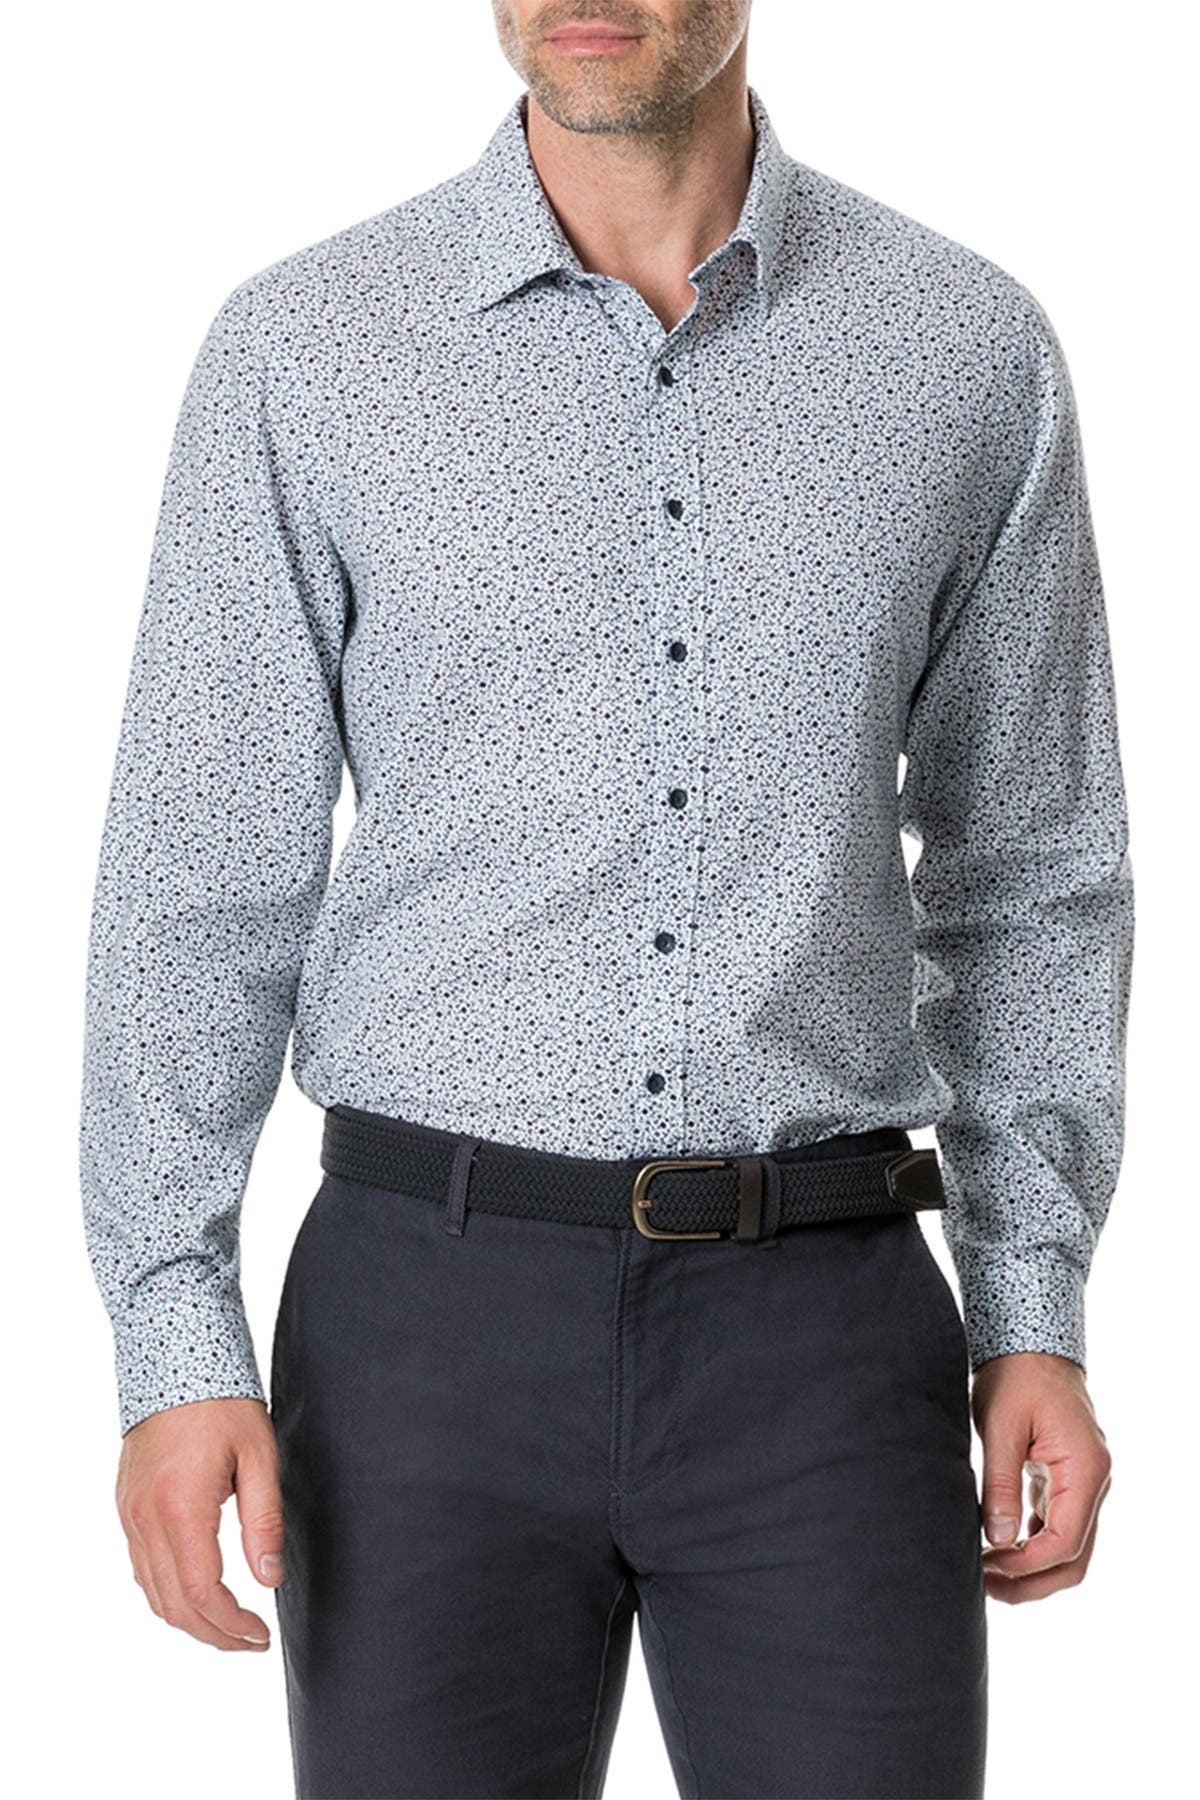 RODD AND GUNN Harewood Regular Fit Flannel Sport Shirt at Nordstrom Rack